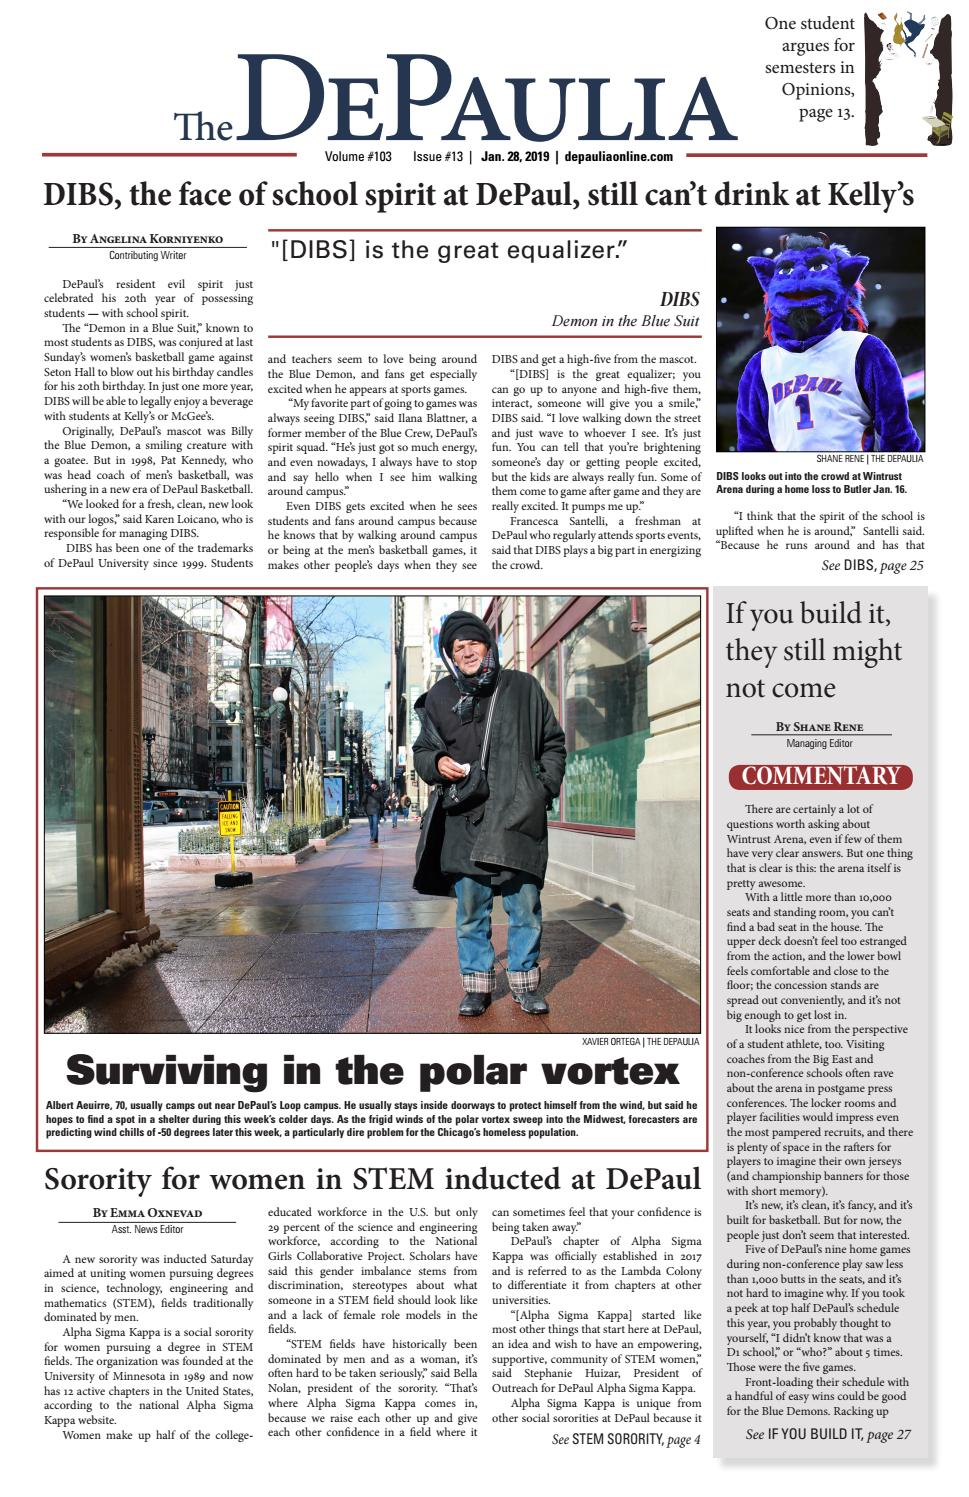 The DePaulia 1/28 by The DePaulia - issuu